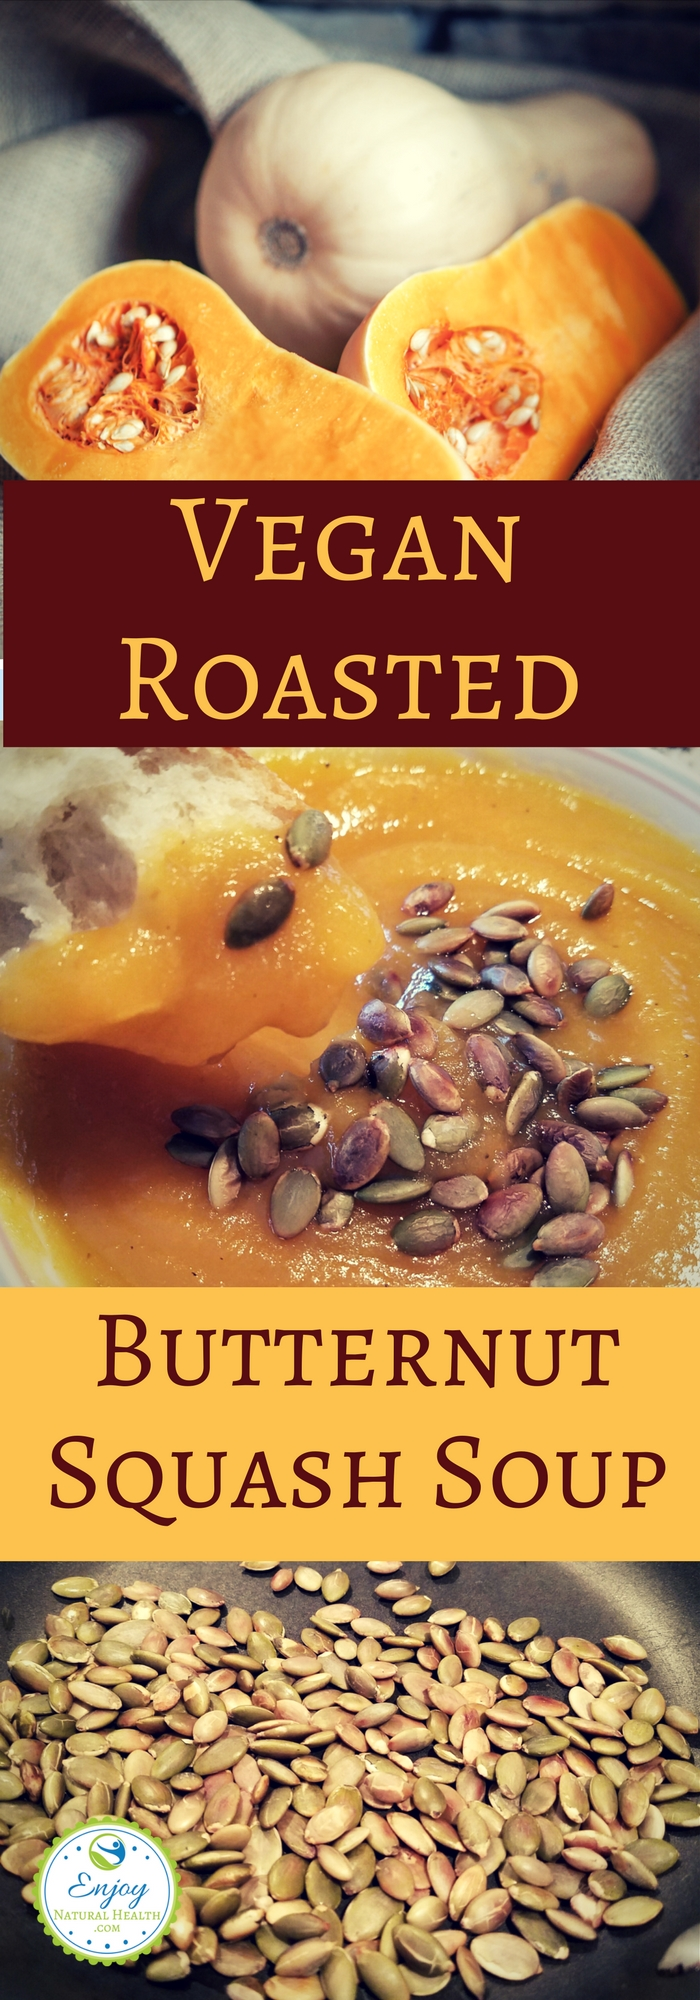 This healthy roasted butternut squash soup is easy to make and DELICIOUS!